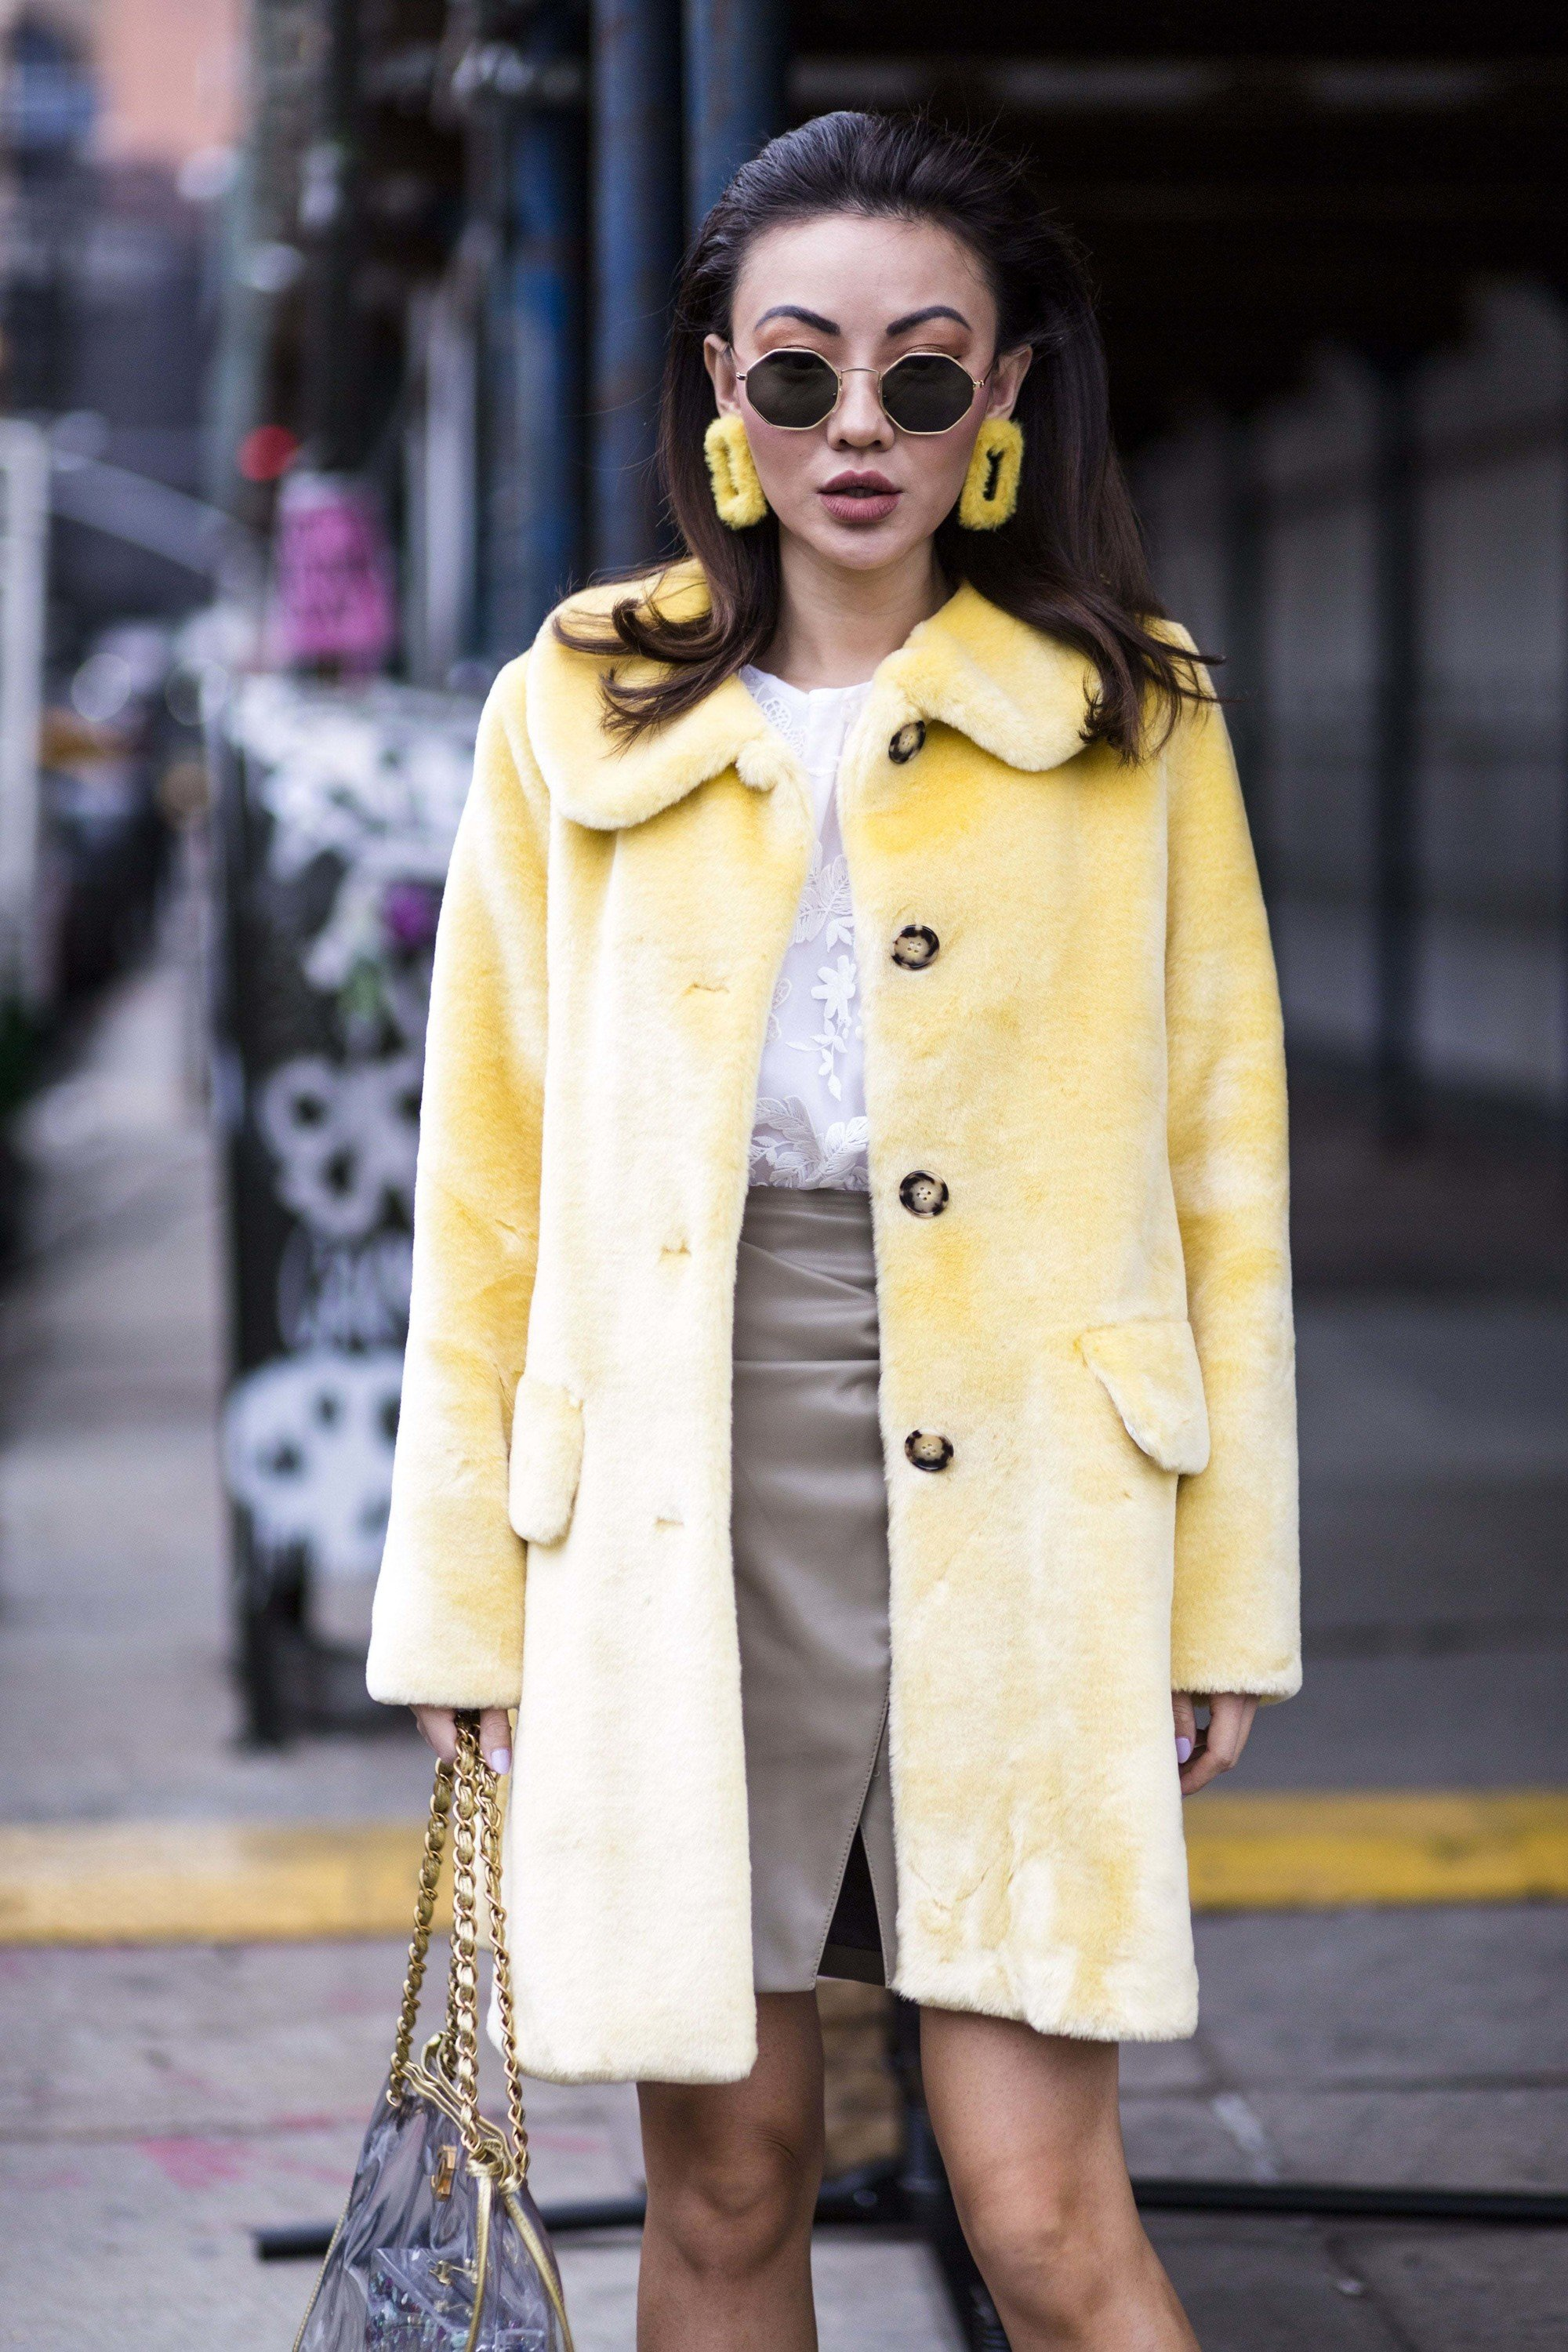 nyfw street style shot of an asian woman in a 60s outfit with pushed back hair